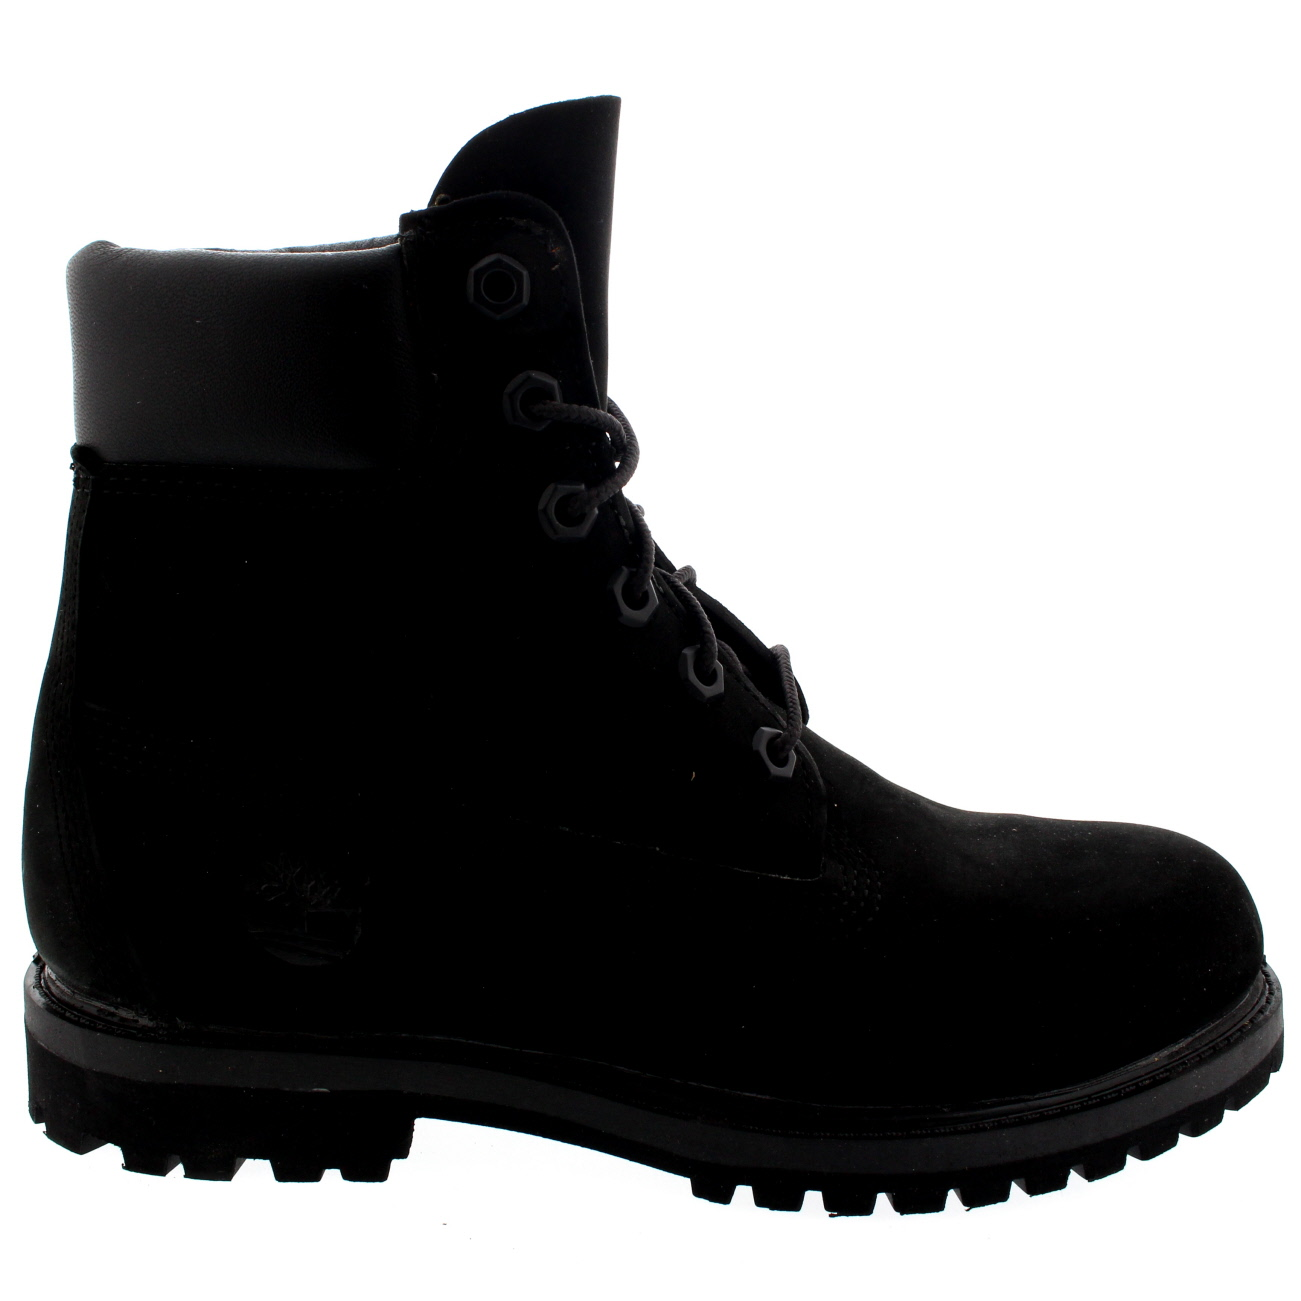 f7dfd312cf48 Details about Womens Timberland 6 Inch Premium Waterproof Lace Up Black  Nubuck Boots UK 3-8